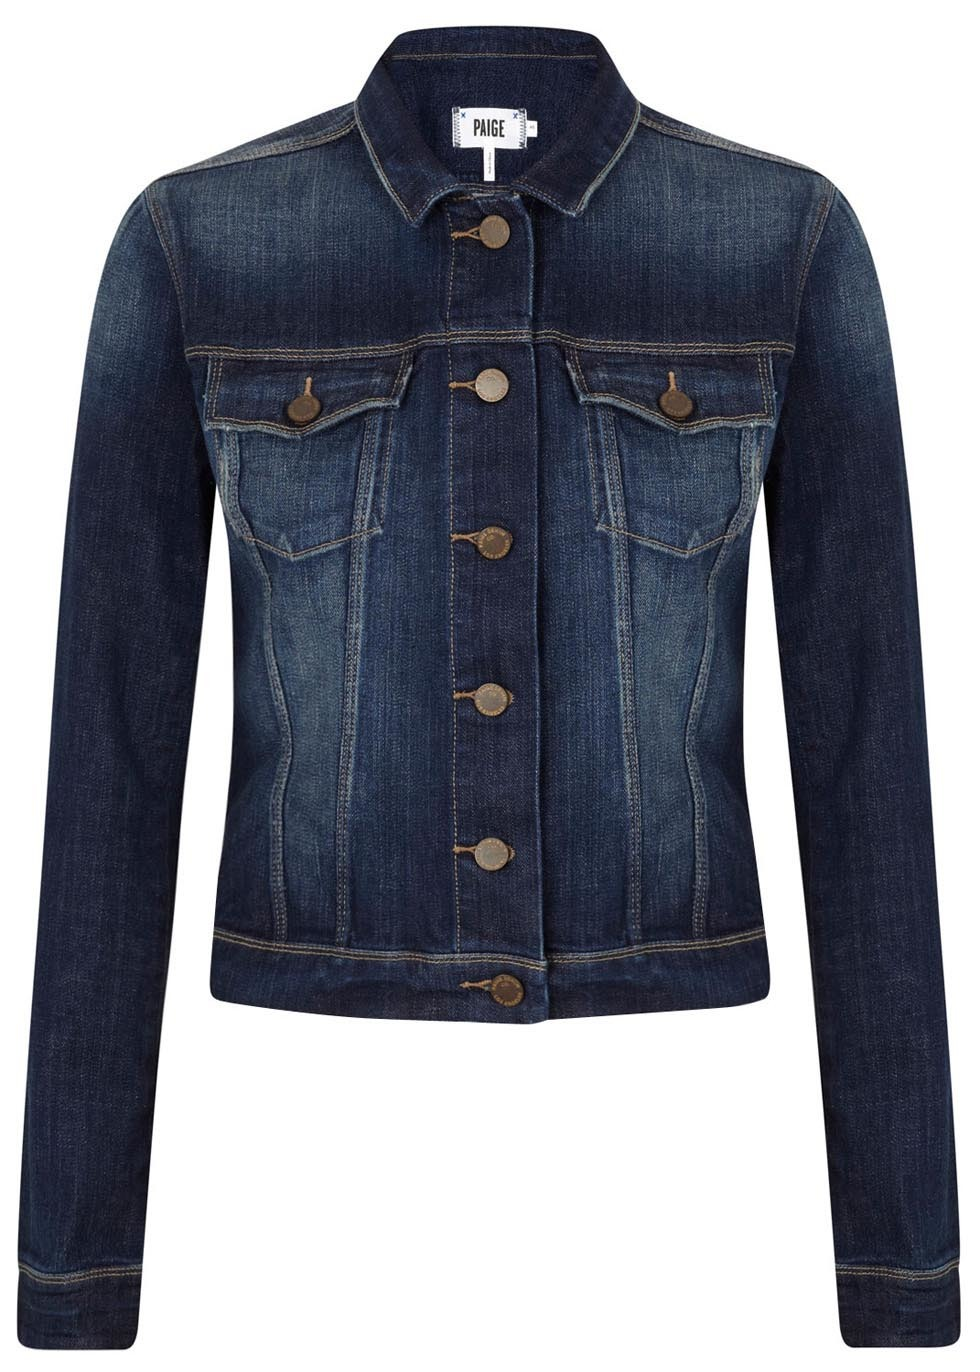 Dark Blue Denim Jacket - pattern: plain; style: denim; fit: slim fit; predominant colour: navy; occasions: casual, creative work; length: standard; fibres: cotton - stretch; collar: shirt collar/peter pan/zip with opening; sleeve length: long sleeve; sleeve style: standard; texture group: denim; collar break: high/illusion of break when open; pattern type: fabric; season: a/w 2014; wardrobe: basic